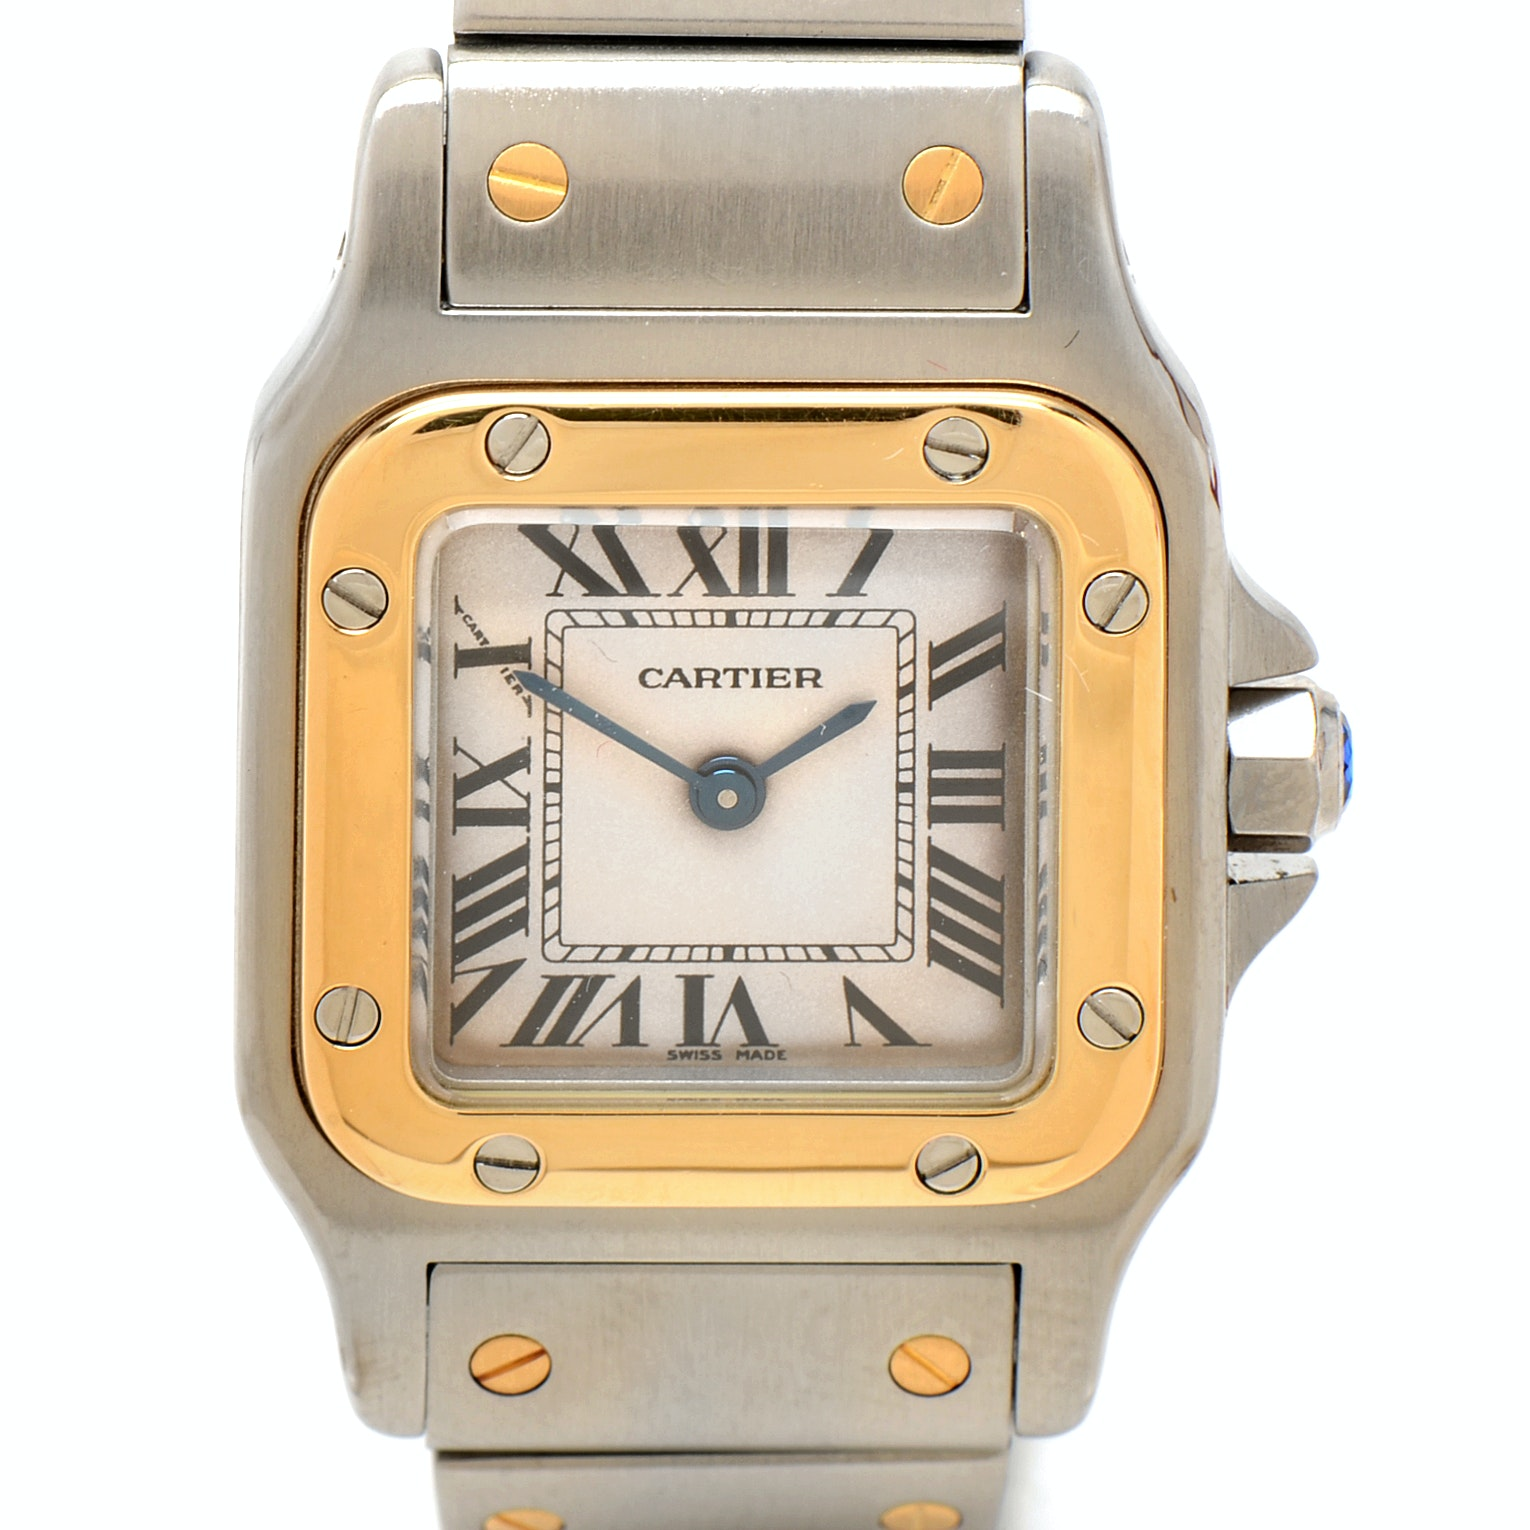 Cartier Santos Galbée 18K Yellow Gold and Stainless Steel Quartz Wristwatch